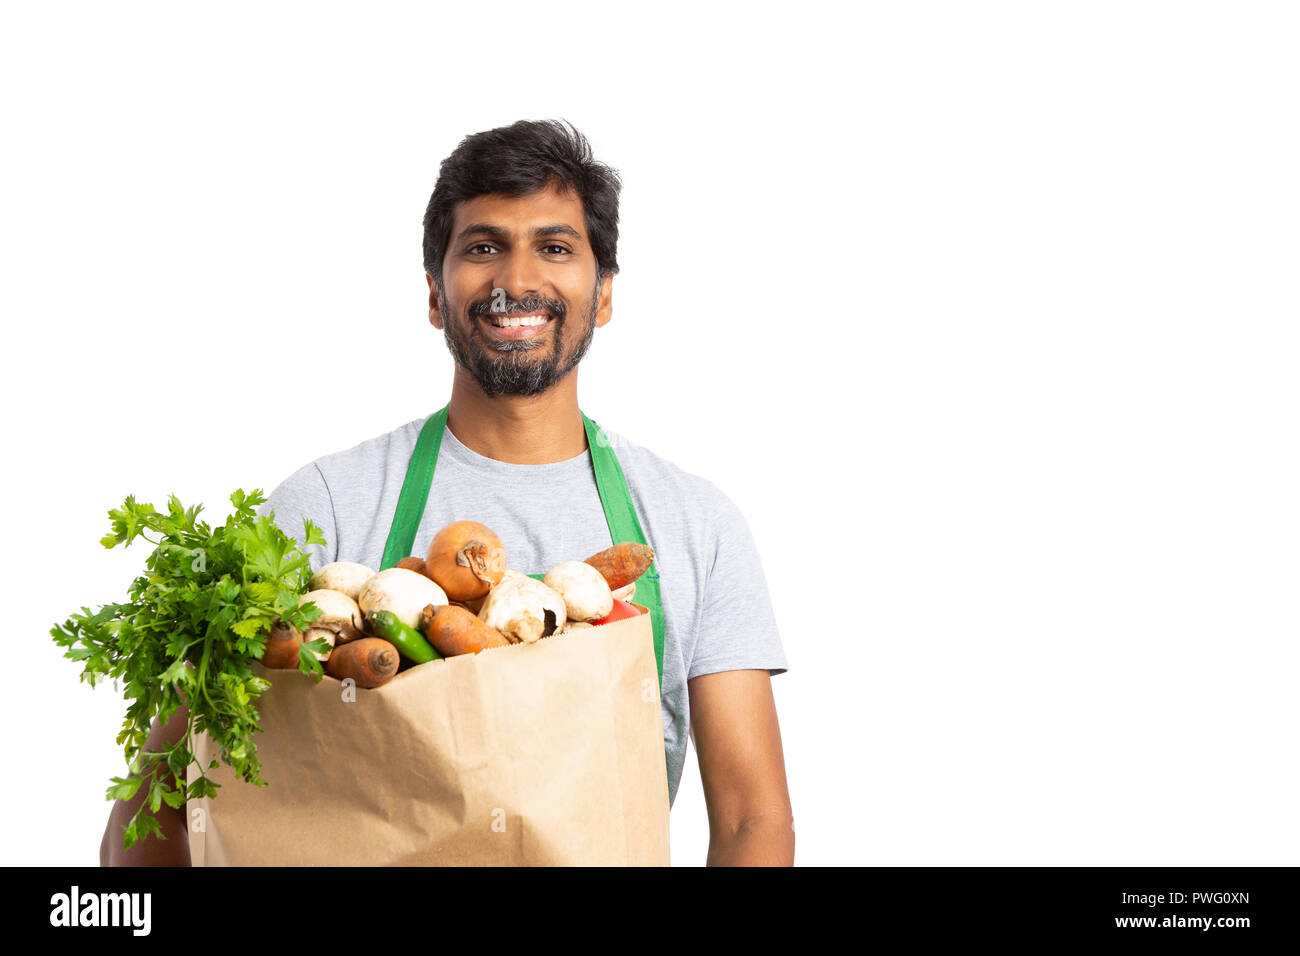 Indian Eco Friendly Products Stock Photos & Indian Eco